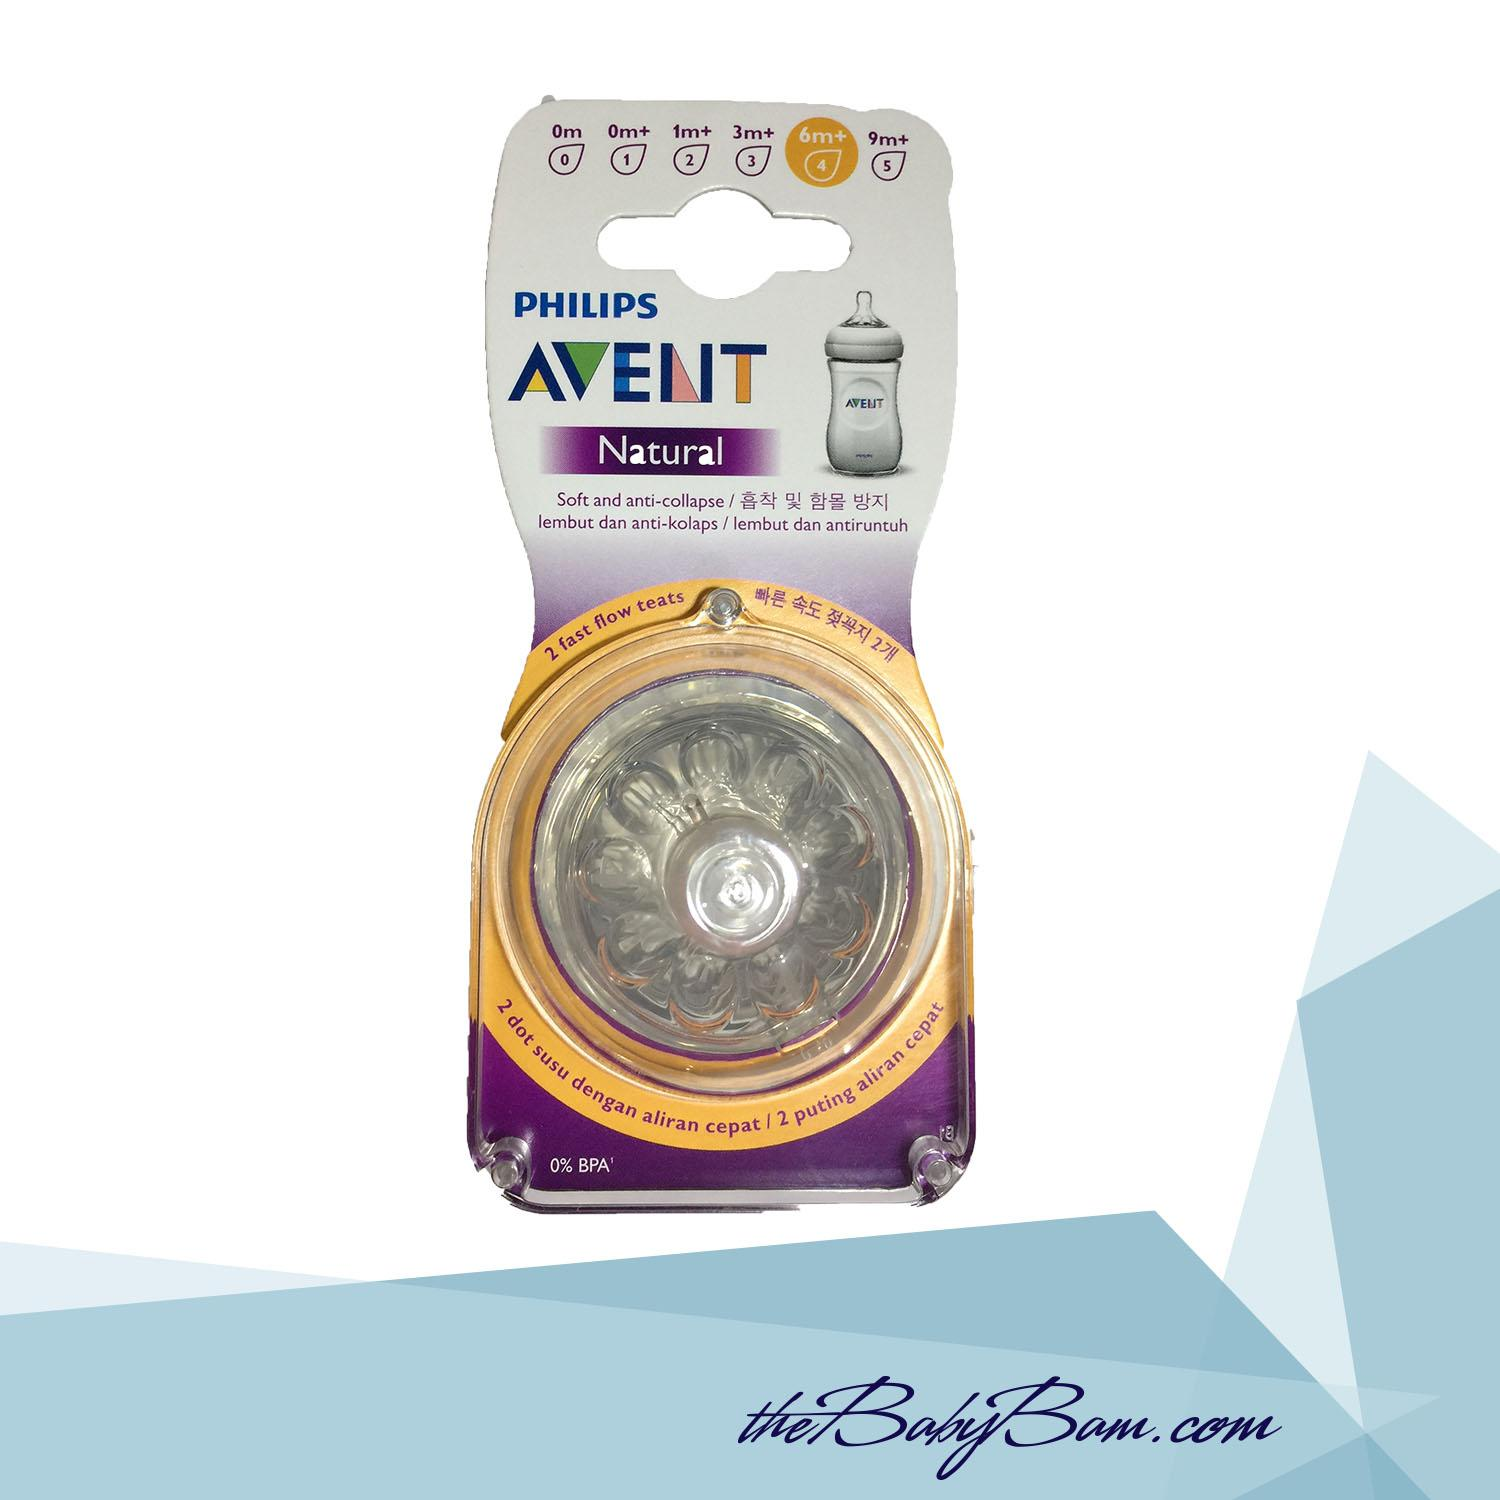 Philips Avent Natural Nipple / Teats 6m+ 2pcs Fast Flow By Thebabybam.